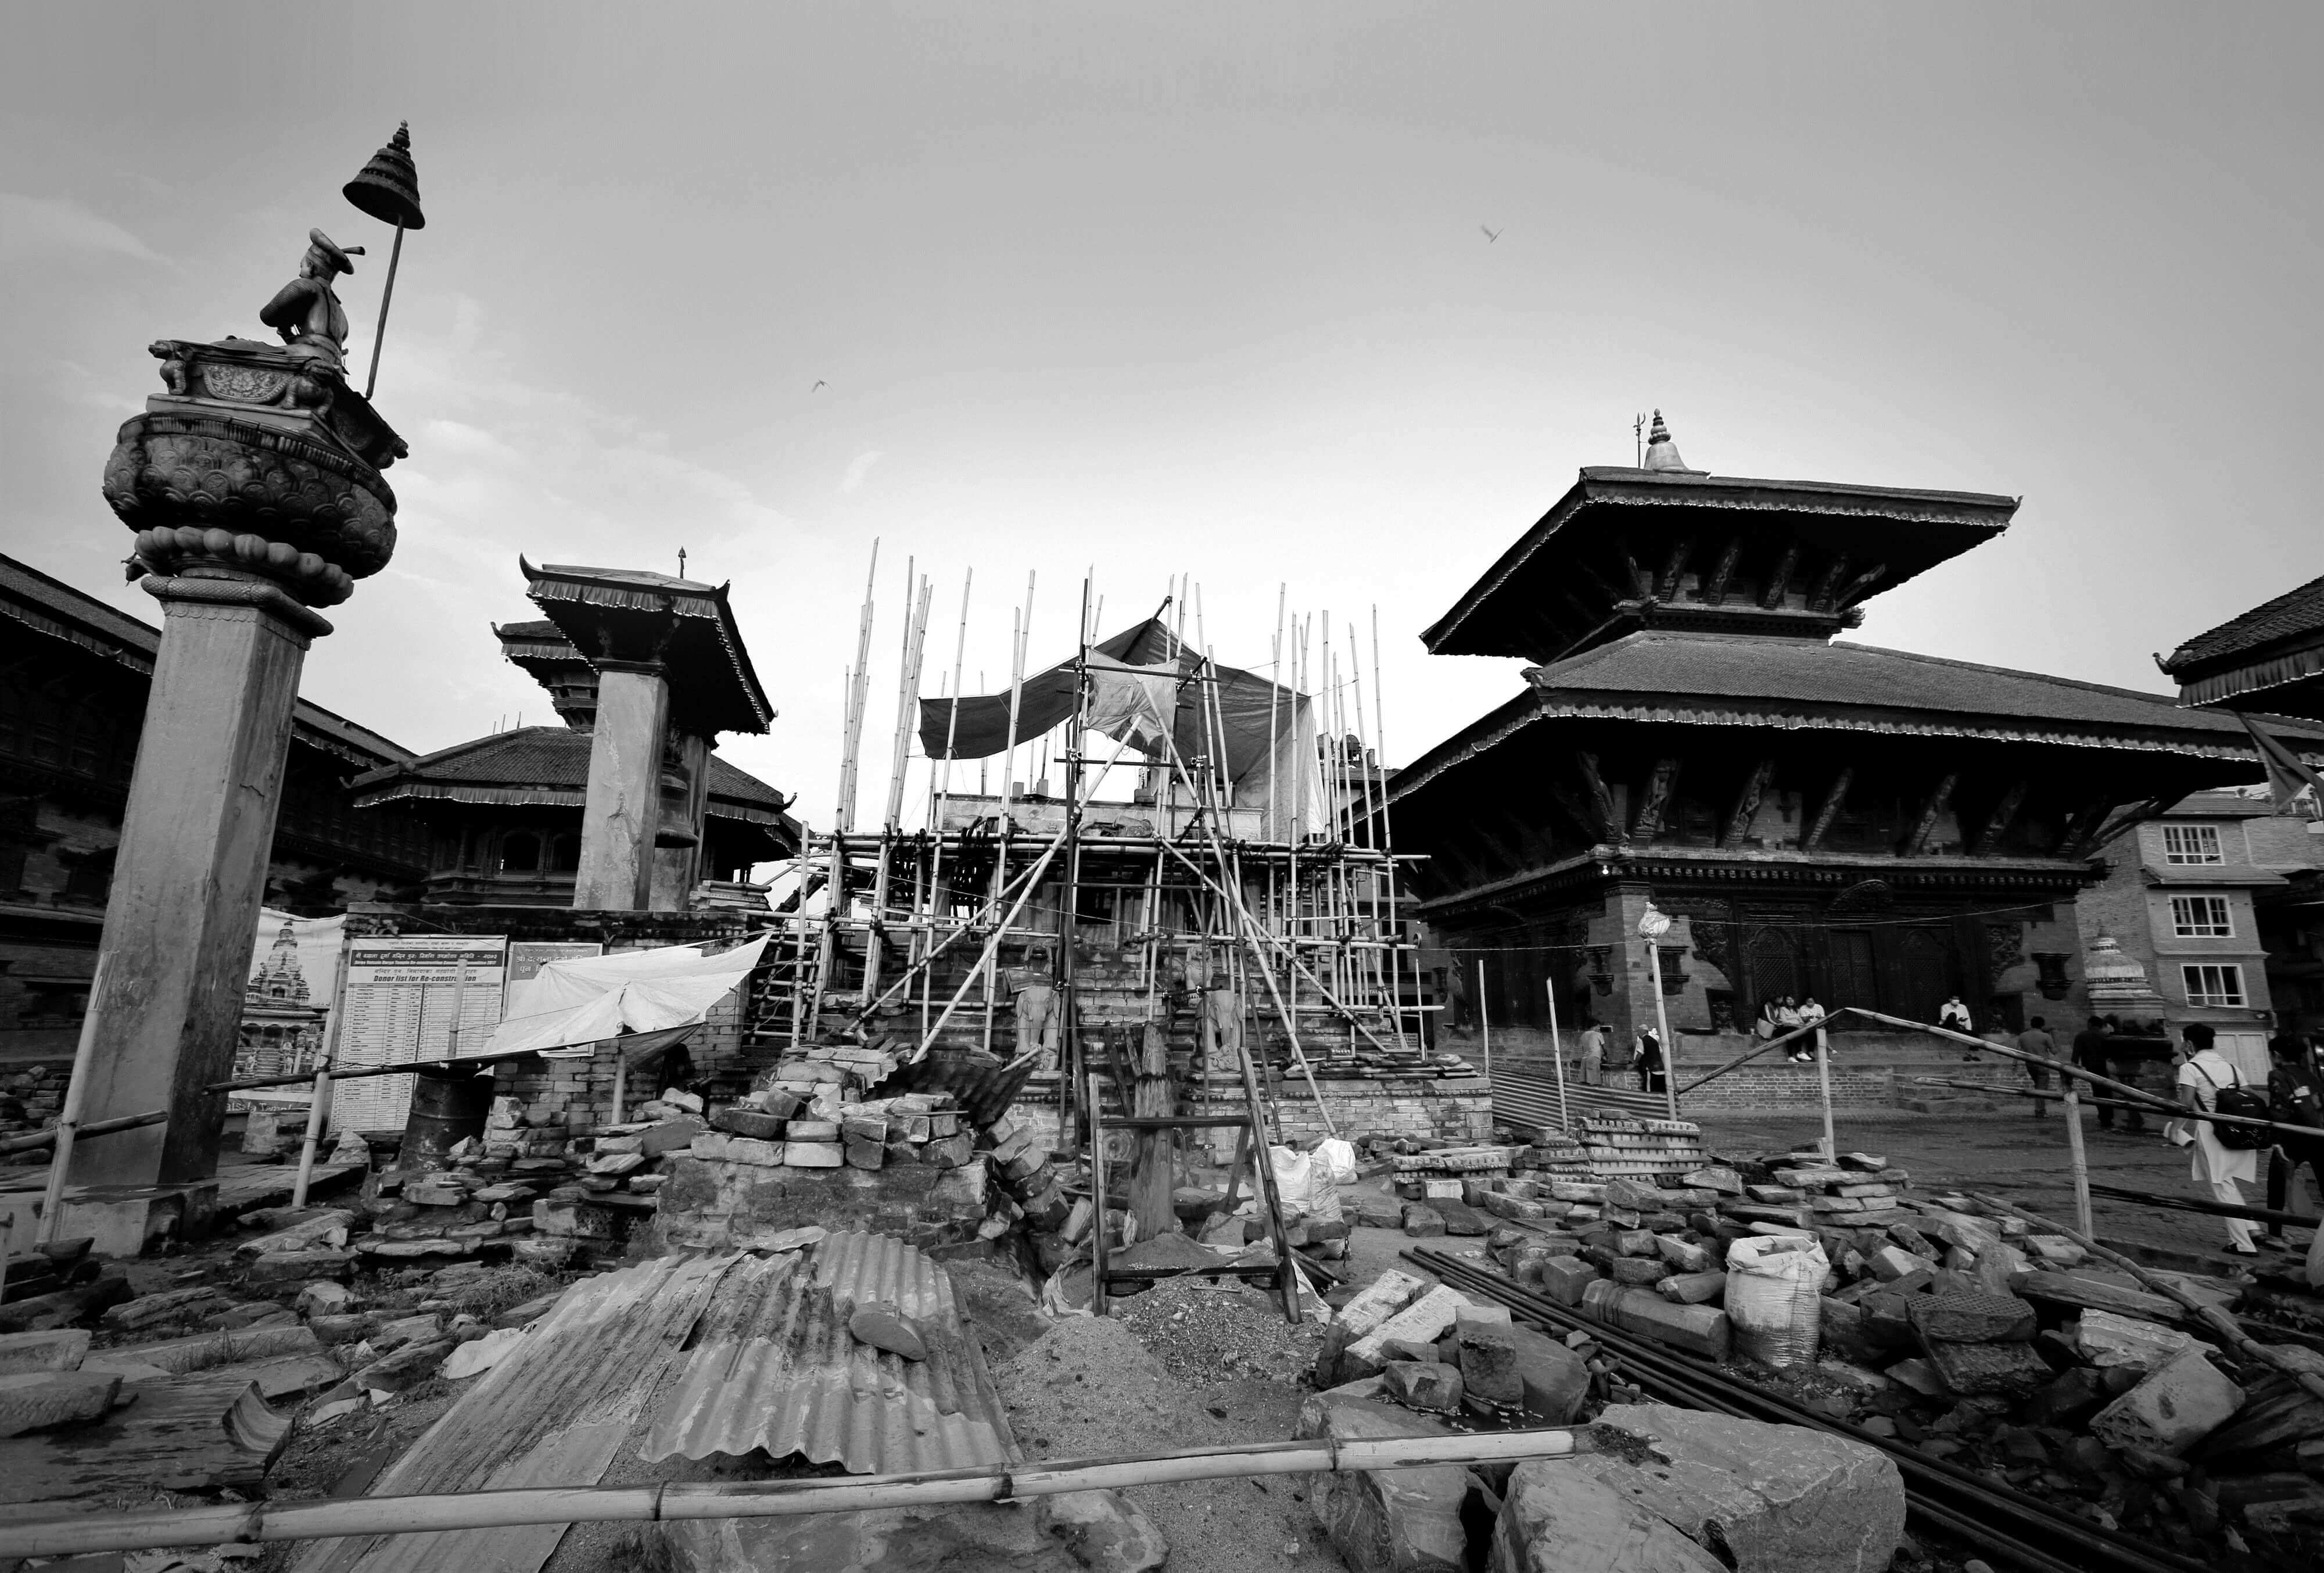 Clash of cultures in Bhaktapur